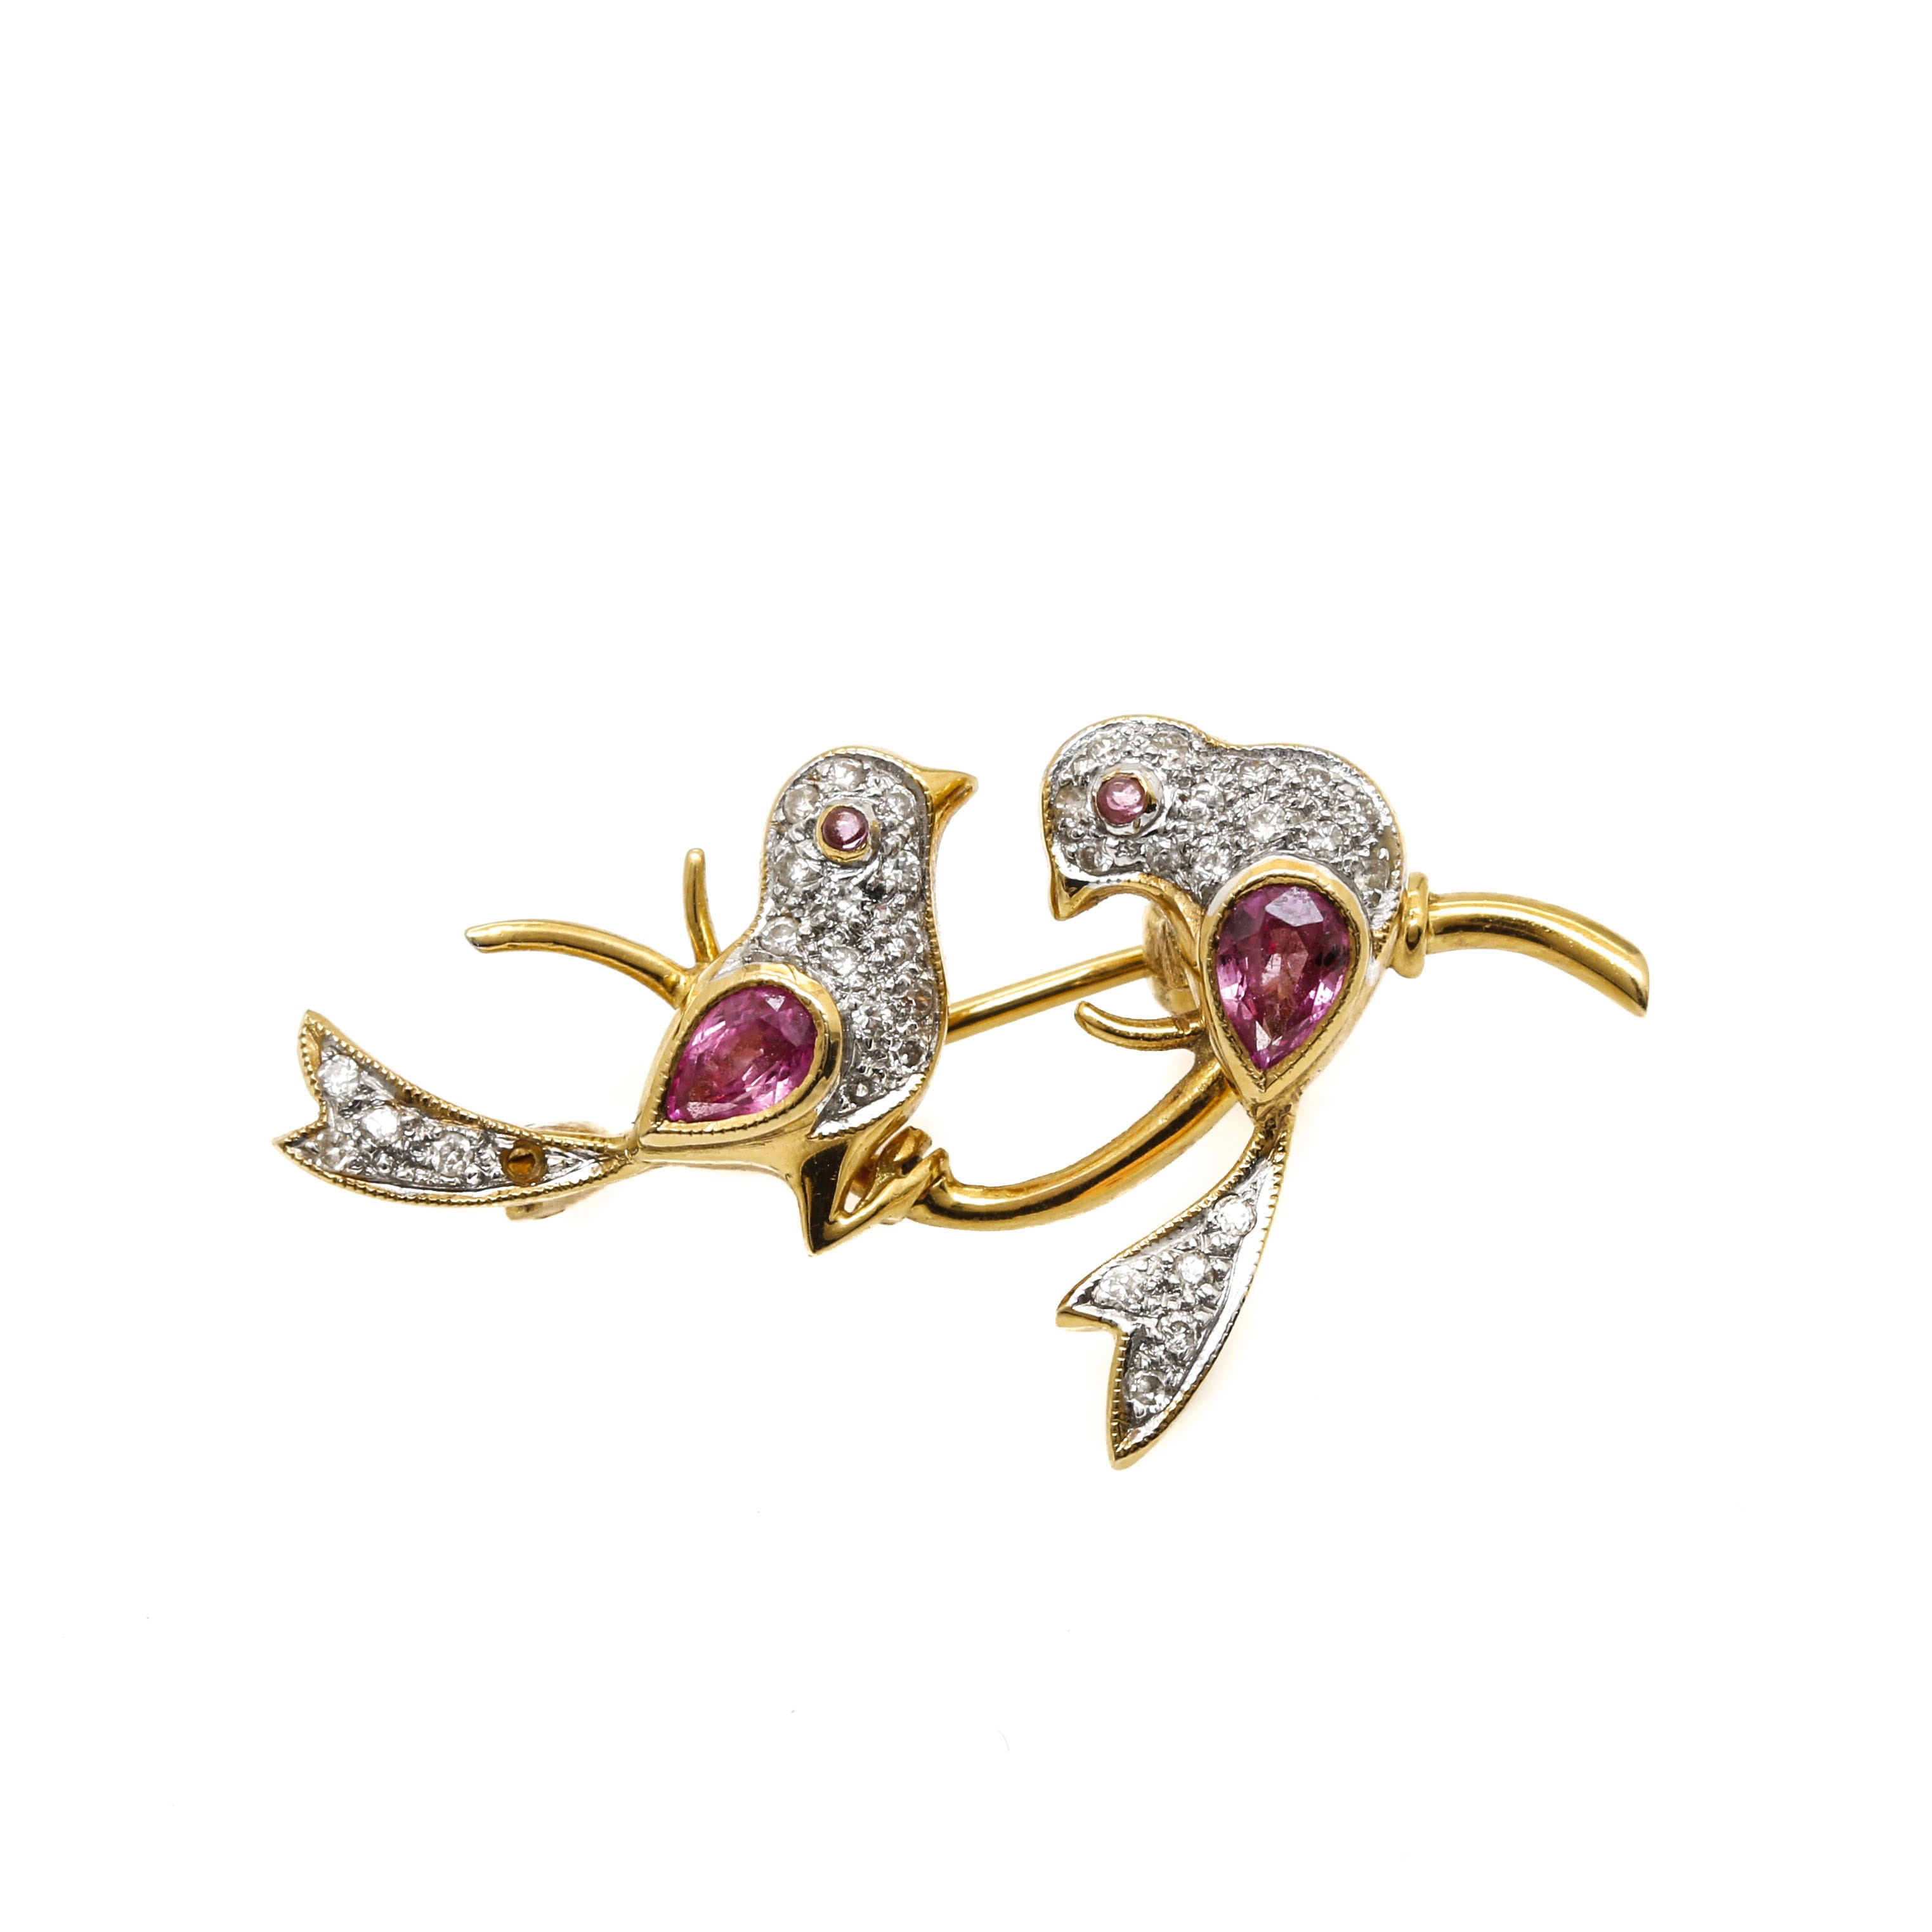 18K Yellow Gold Diamond and Pink Sapphire Birds Brooch